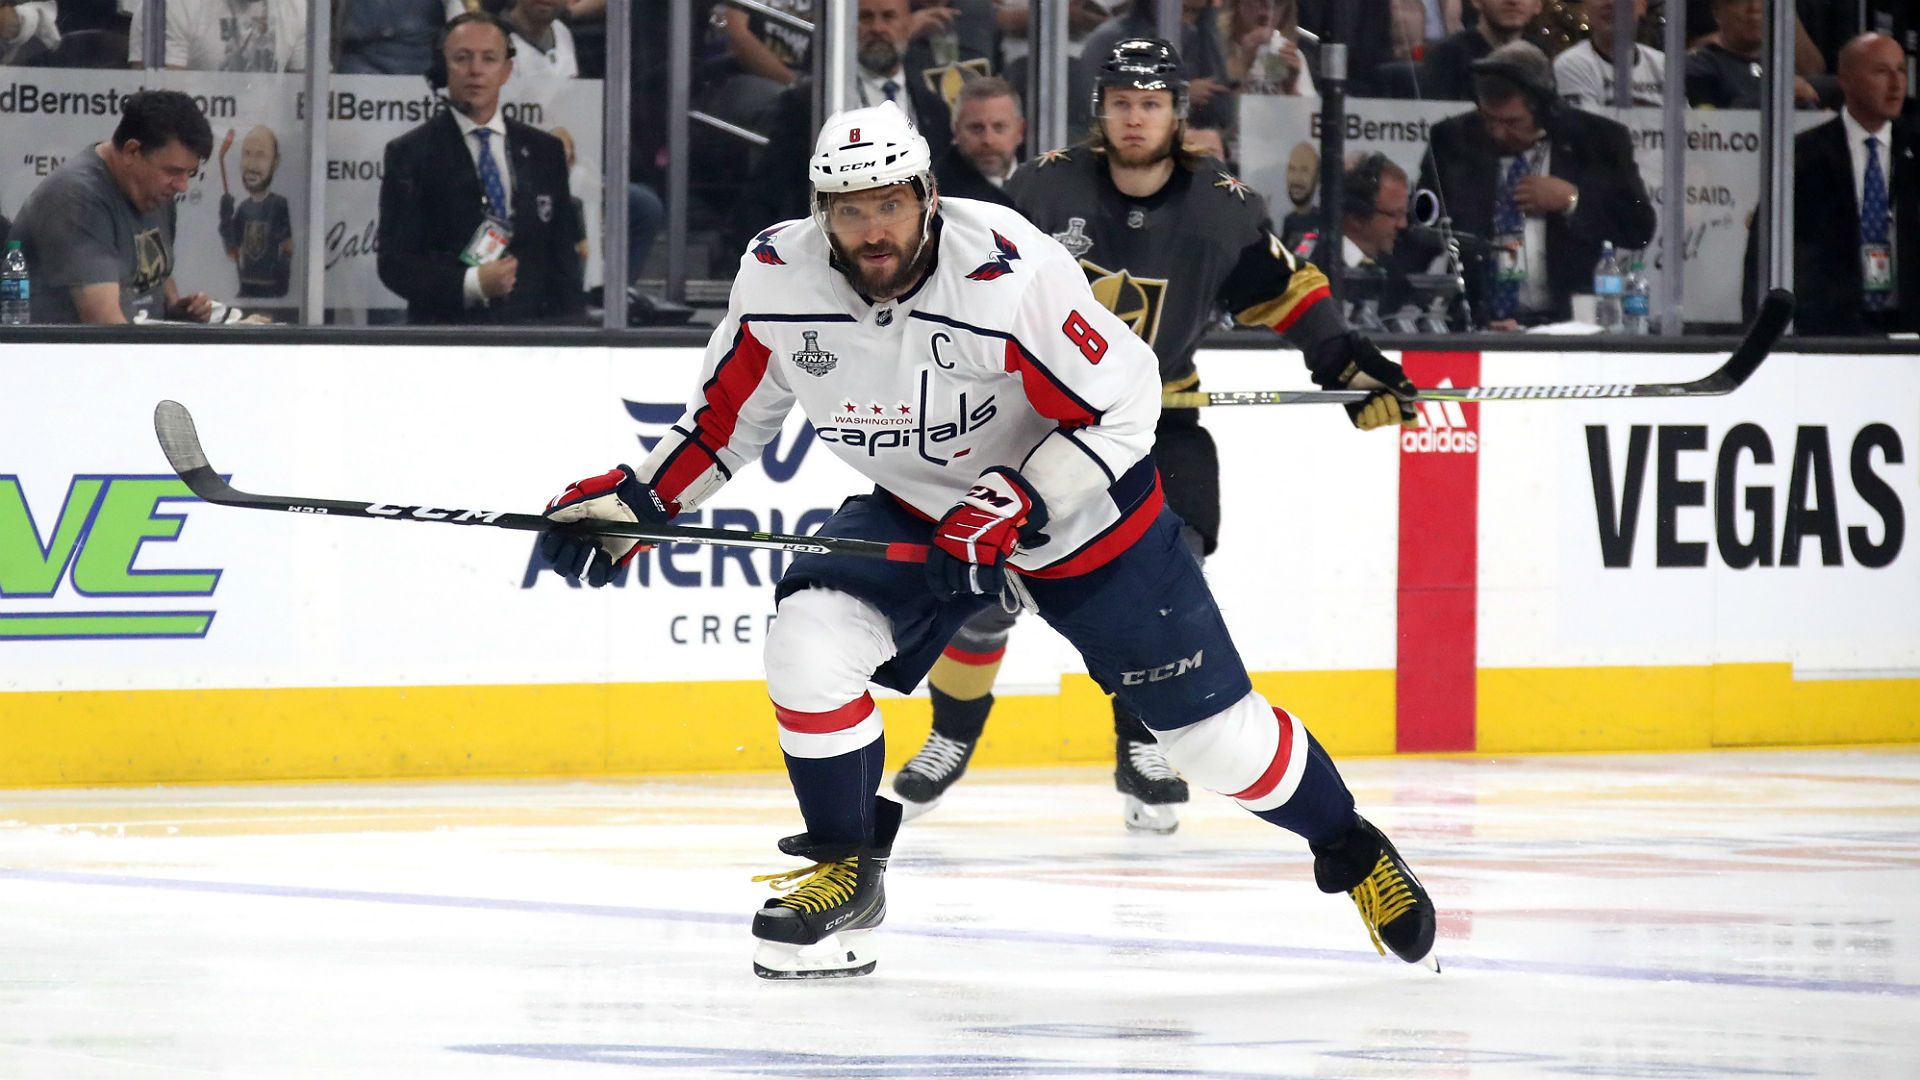 Stanley Cup Final: Capitals on brink of first championship